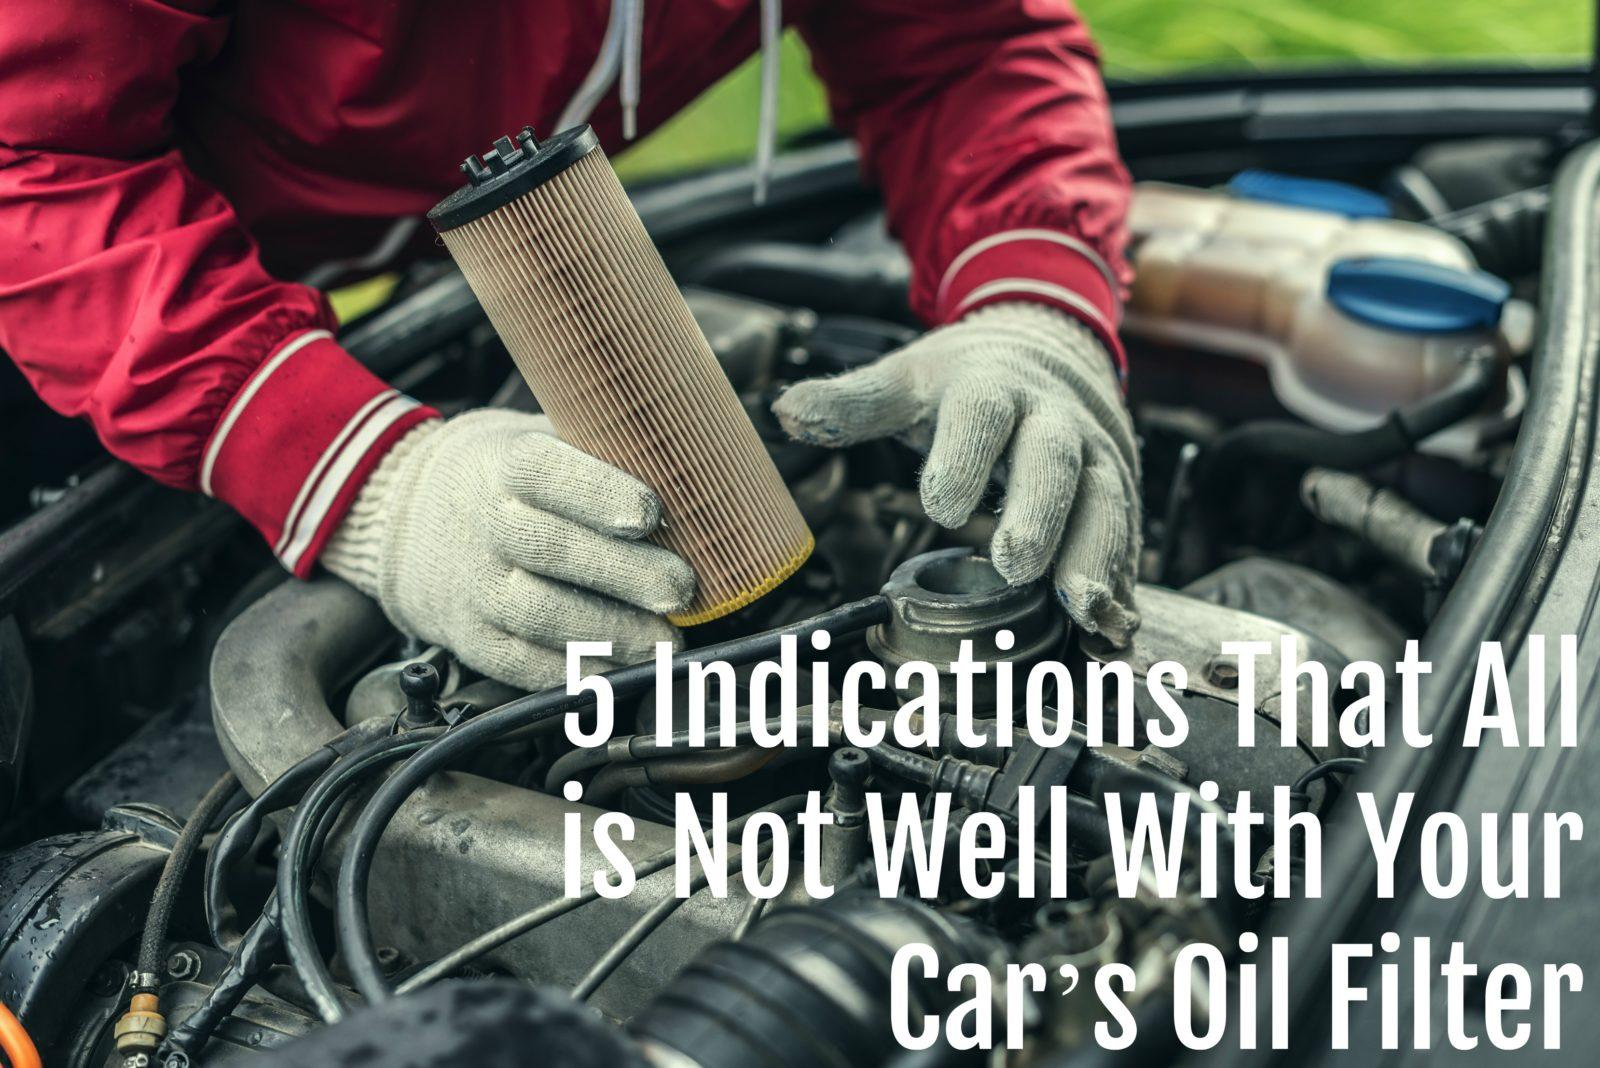 5 indications that all is not well with your oil filter